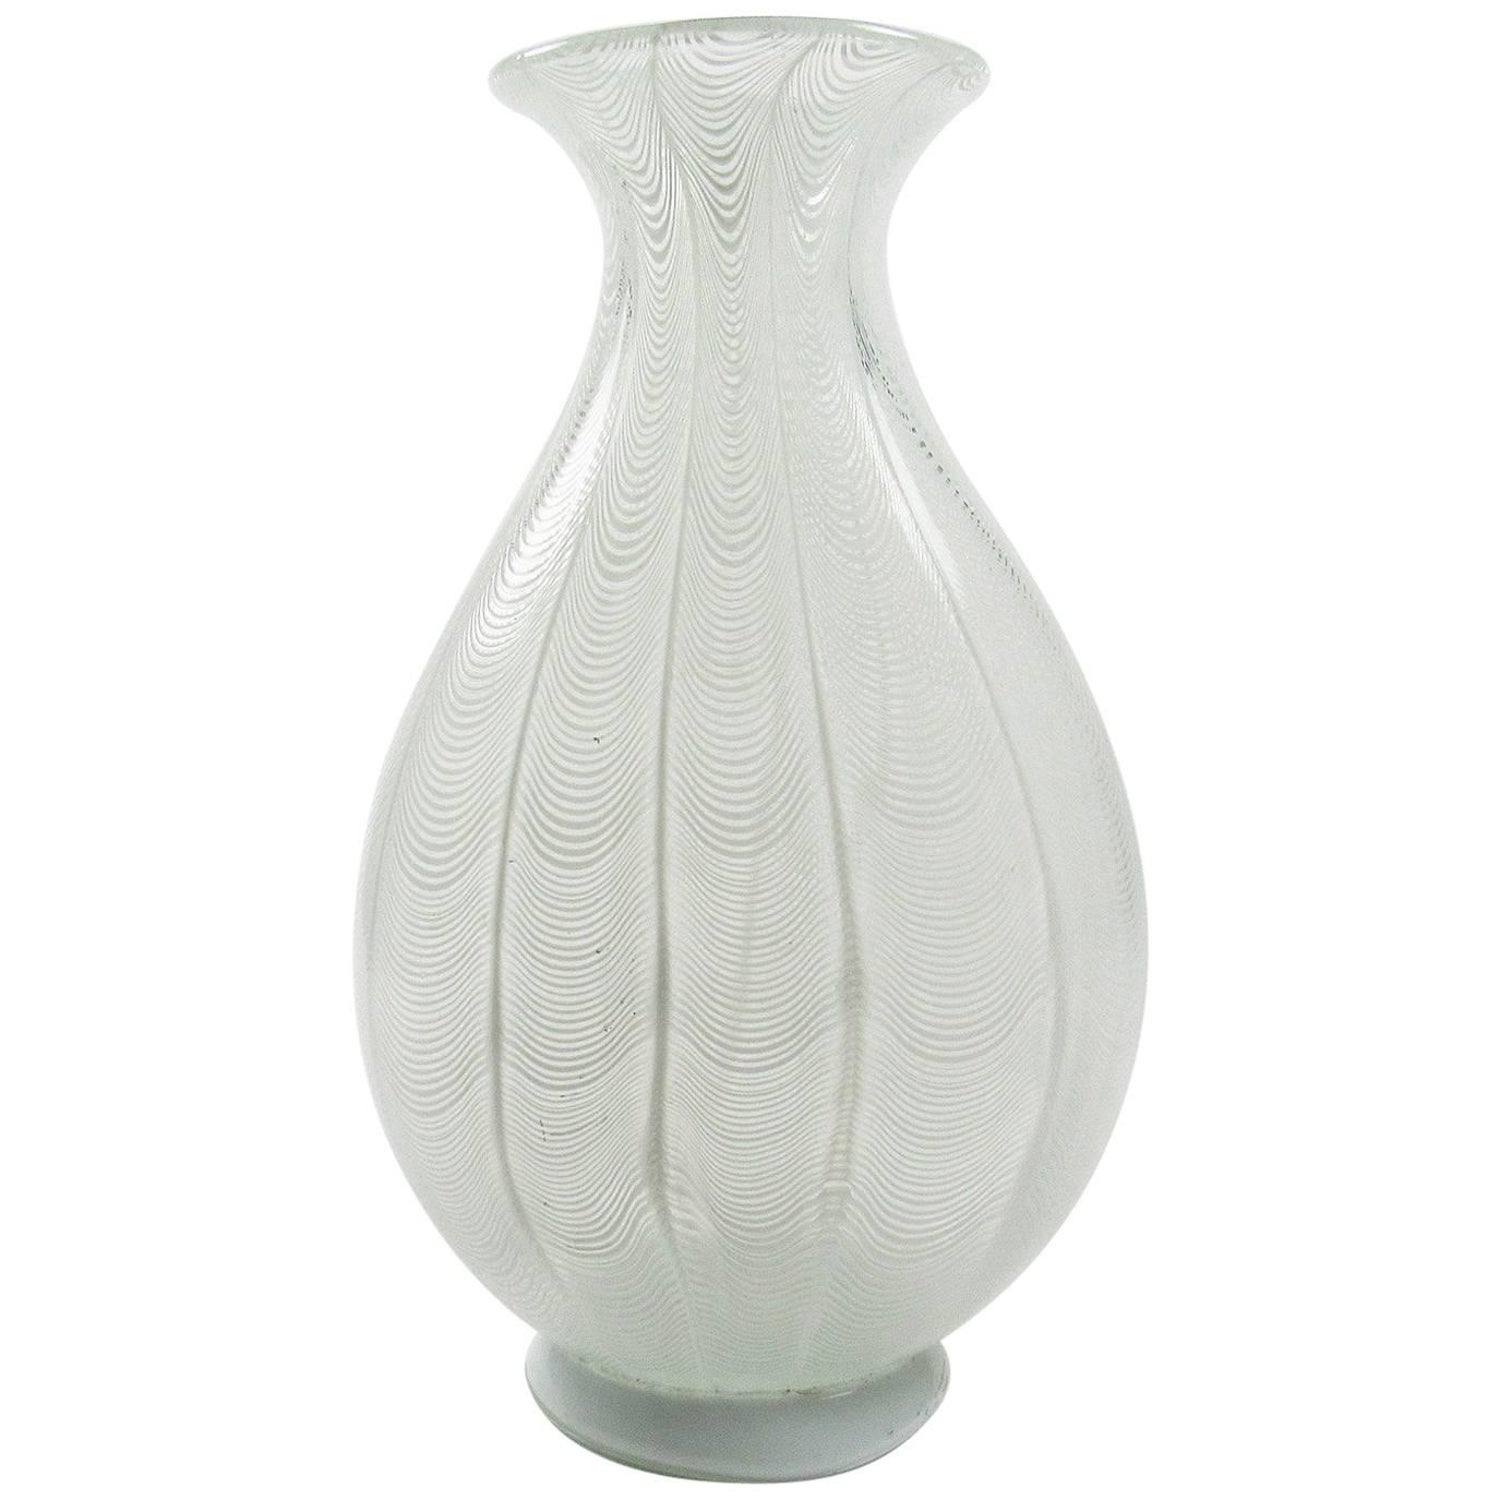 Massive murano white filigree handblown glass vase for sale at 1stdibs reviewsmspy